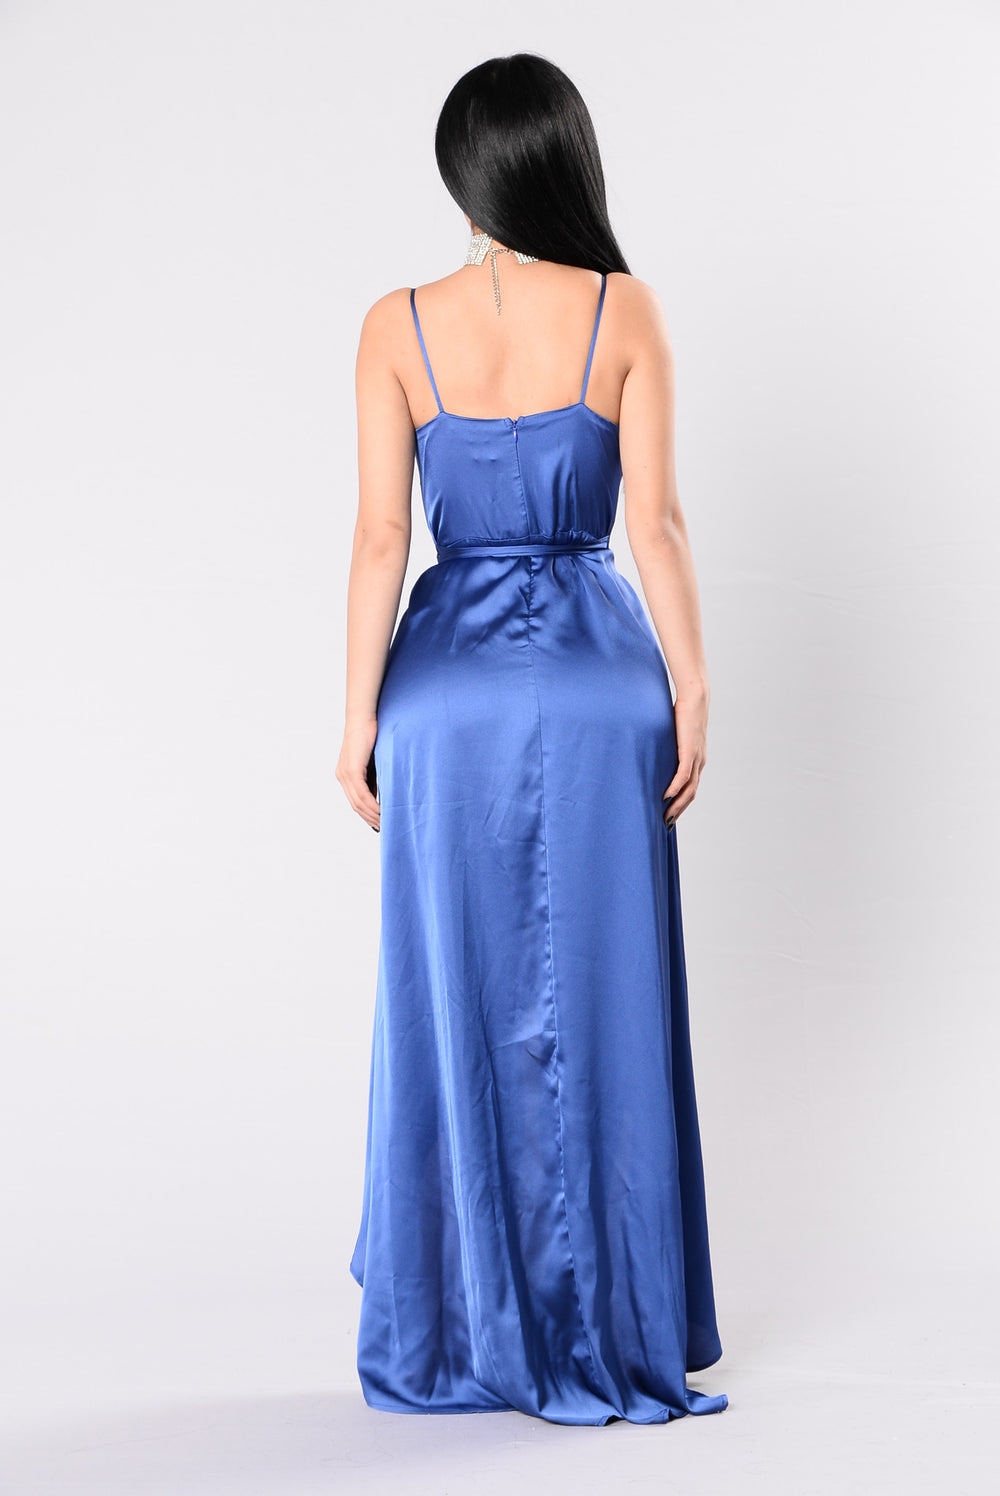 To acquire Blue Midnight dress pictures trends